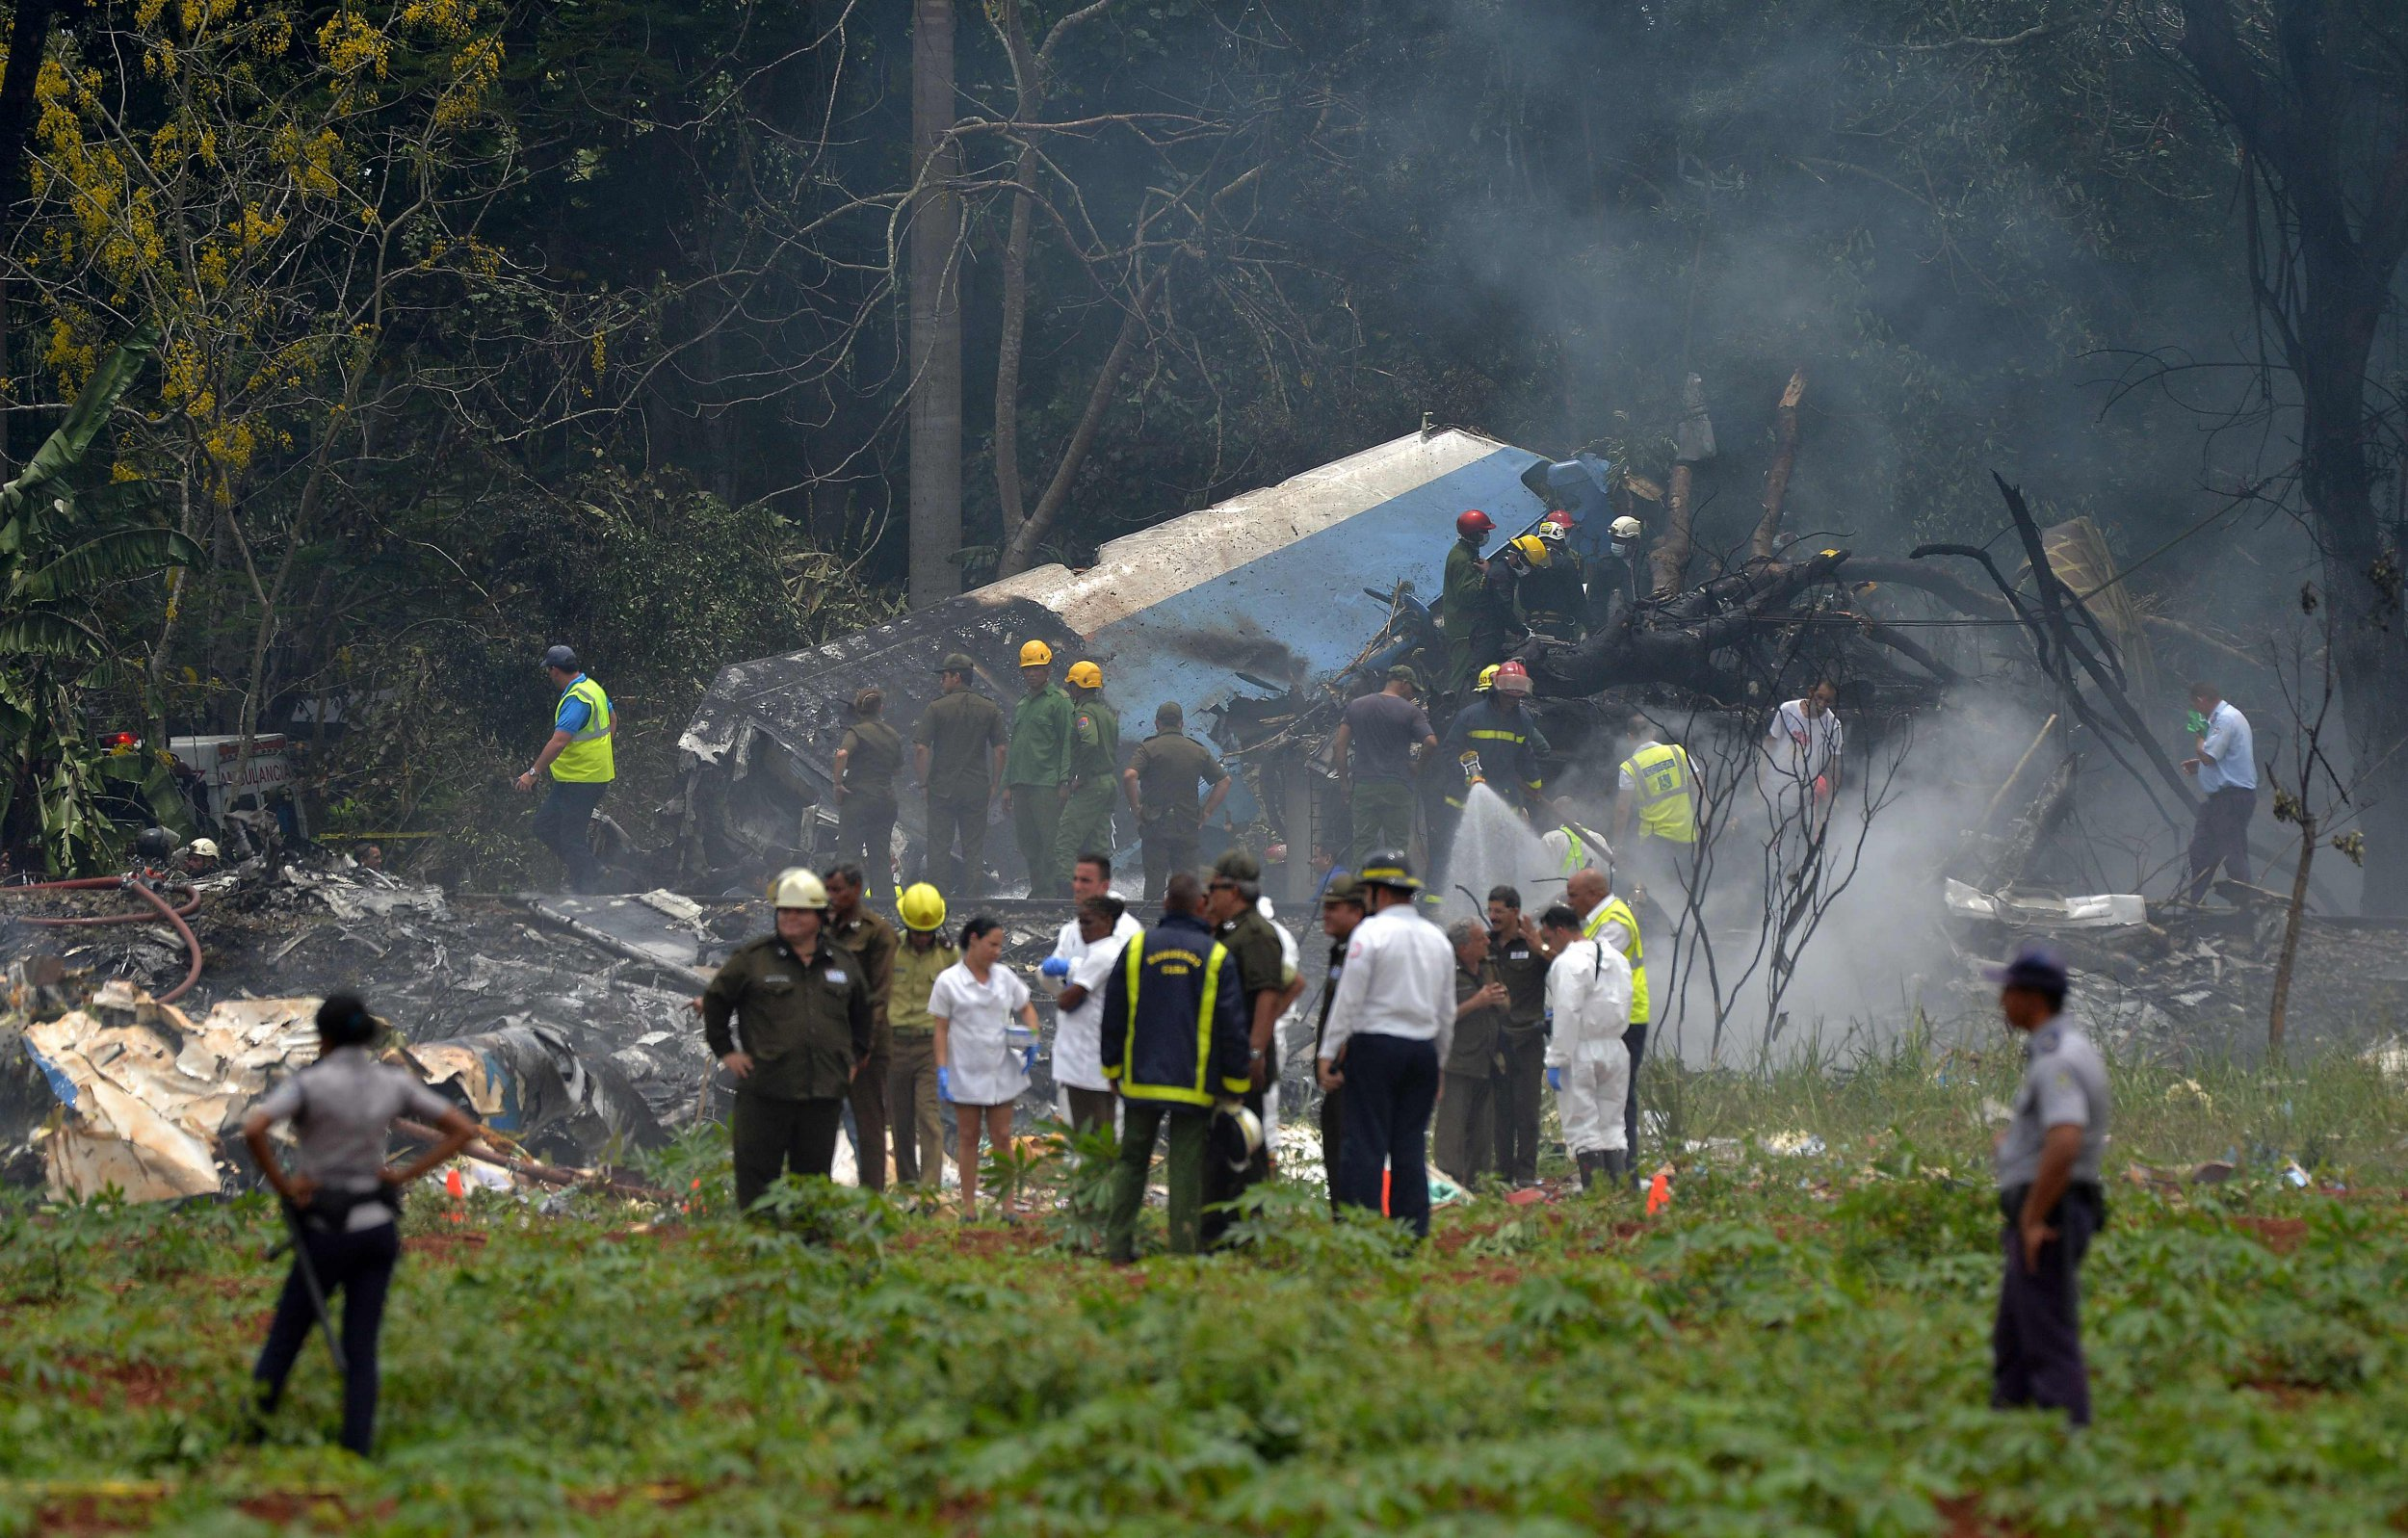 """Picture taken at the scene of the accident after a Cubana de Aviacion aircraft crashed after taking off from Havana's Jose Marti airport on May 18, 2018. A Cuban state airways passenger plane with 104 passengers on board crashed on shortly after taking off from Havana's airport, state media reported. The Boeing 737 operated by Cubana de Aviacion crashed """"near the international airport,"""" state agency Prensa Latina reported. Airport sources said the jetliner was heading from the capital to the eastern city of Holguin. / AFP PHOTO / Yamil LAGEYAMIL LAGE/AFP/Getty Images"""